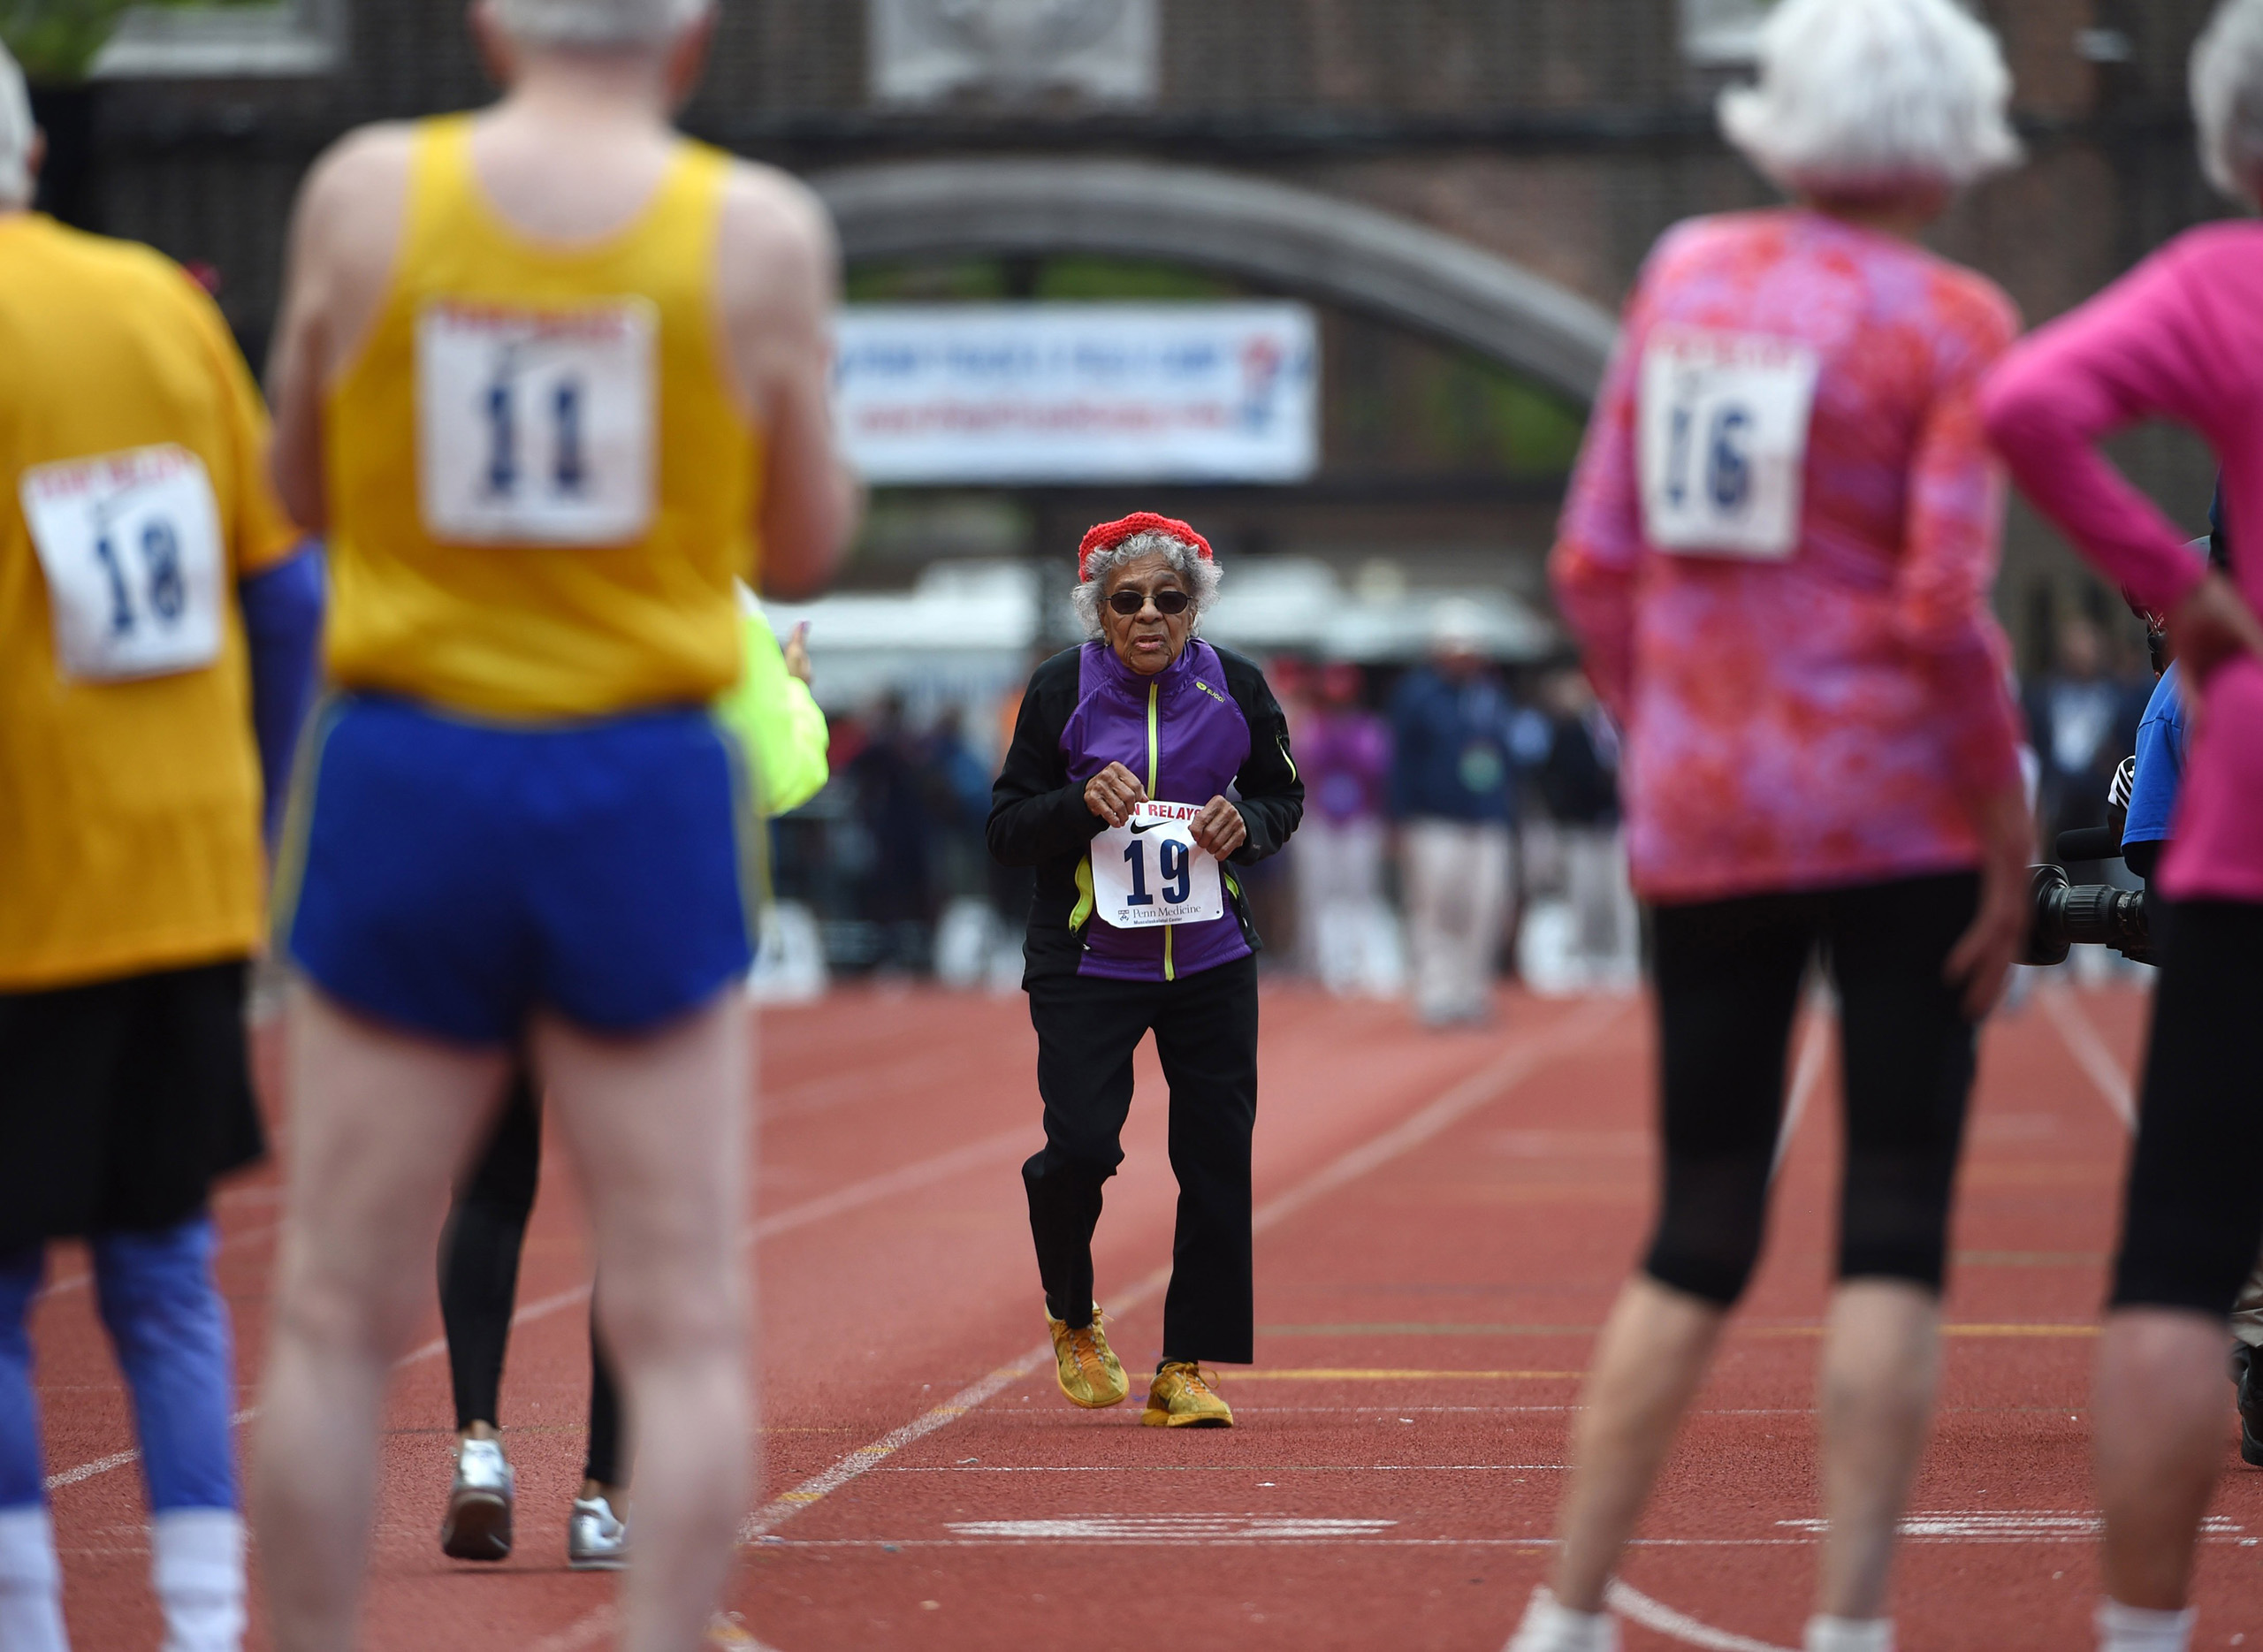 Ida Keeling (age 100) runs in the mixed masters age 80 and over 100m during the 122nd Penn Relays at Franklin Field in Philadelphia, PA, April 30, 2016.